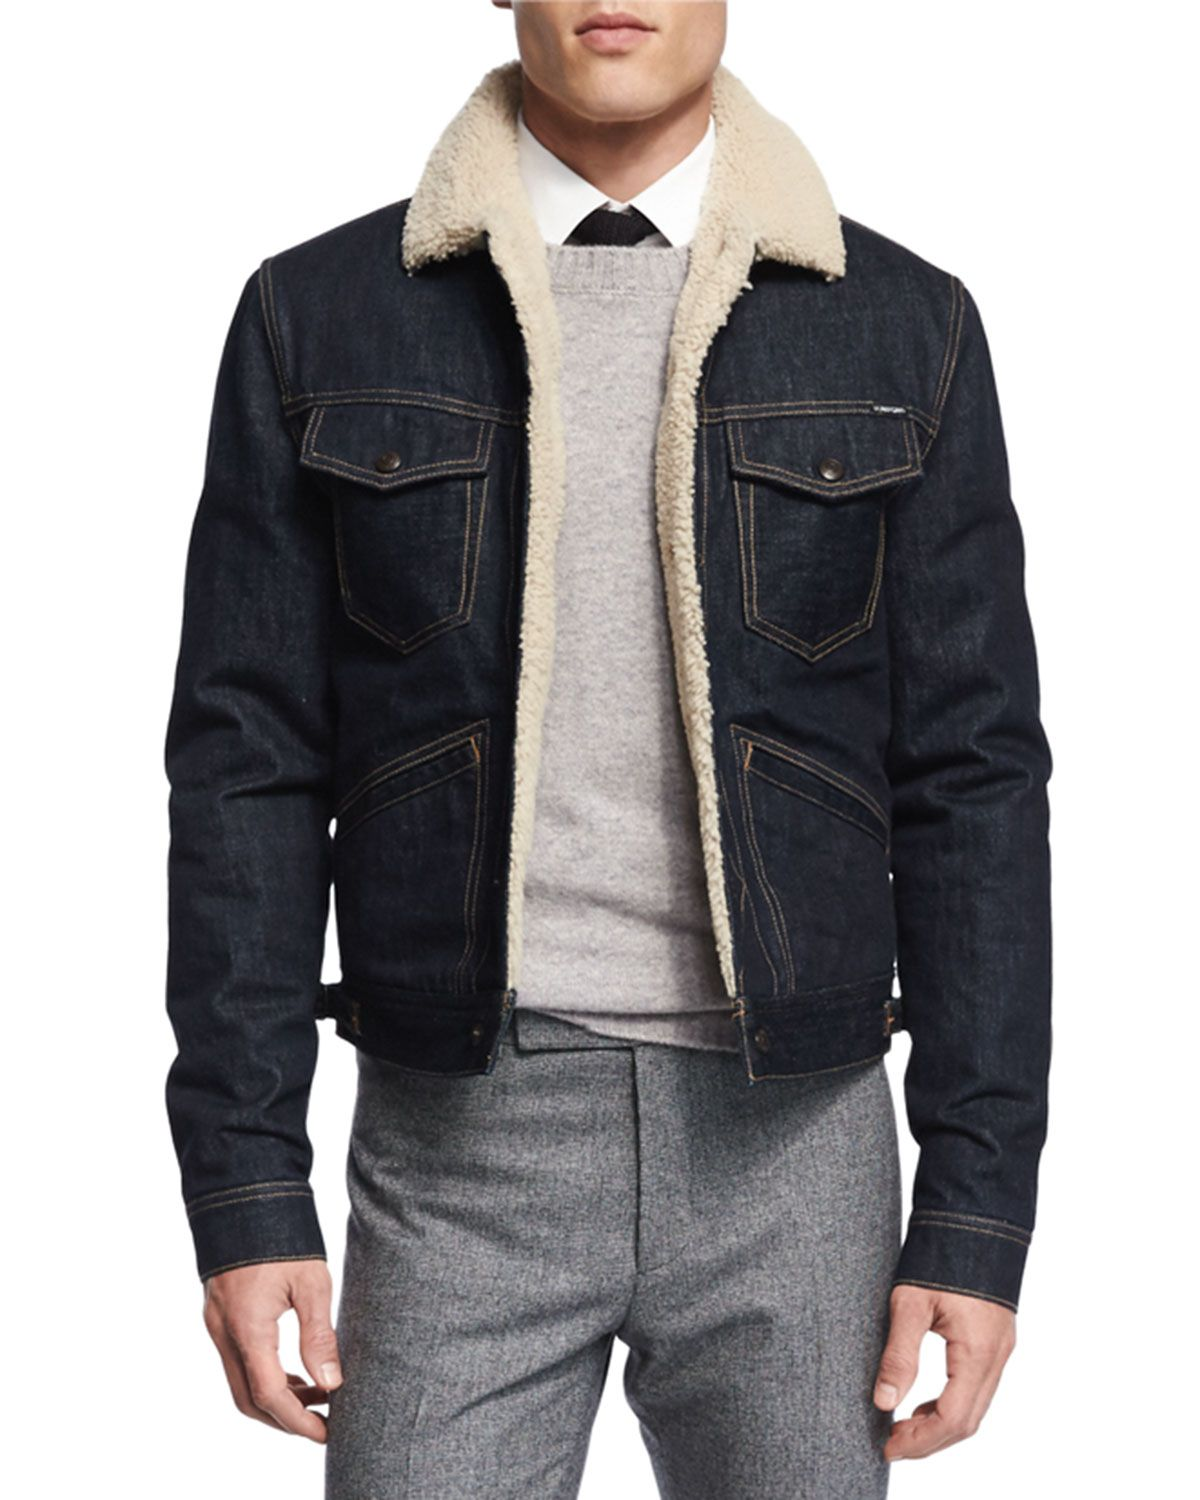 Denim Jacket With Shearling Lining Lined Denim Jacket Fur Lined Denim Jacket Denim Jacket [ 1500 x 1200 Pixel ]